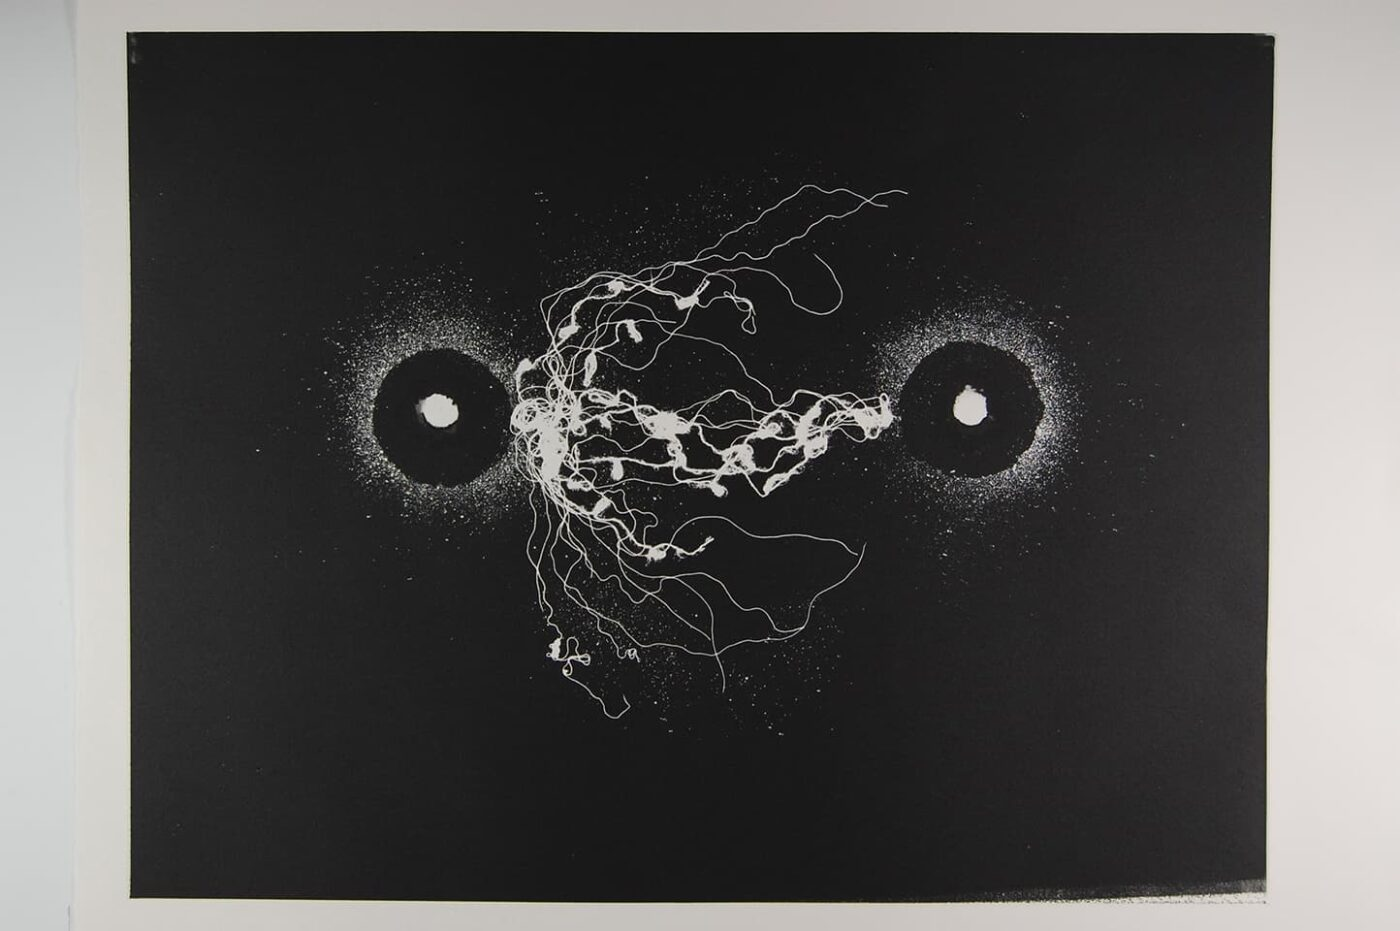 <strong>Out of Body 4.1</strong>, Susan Aldworth, monoprint, 56 x 76 cms, 2009.